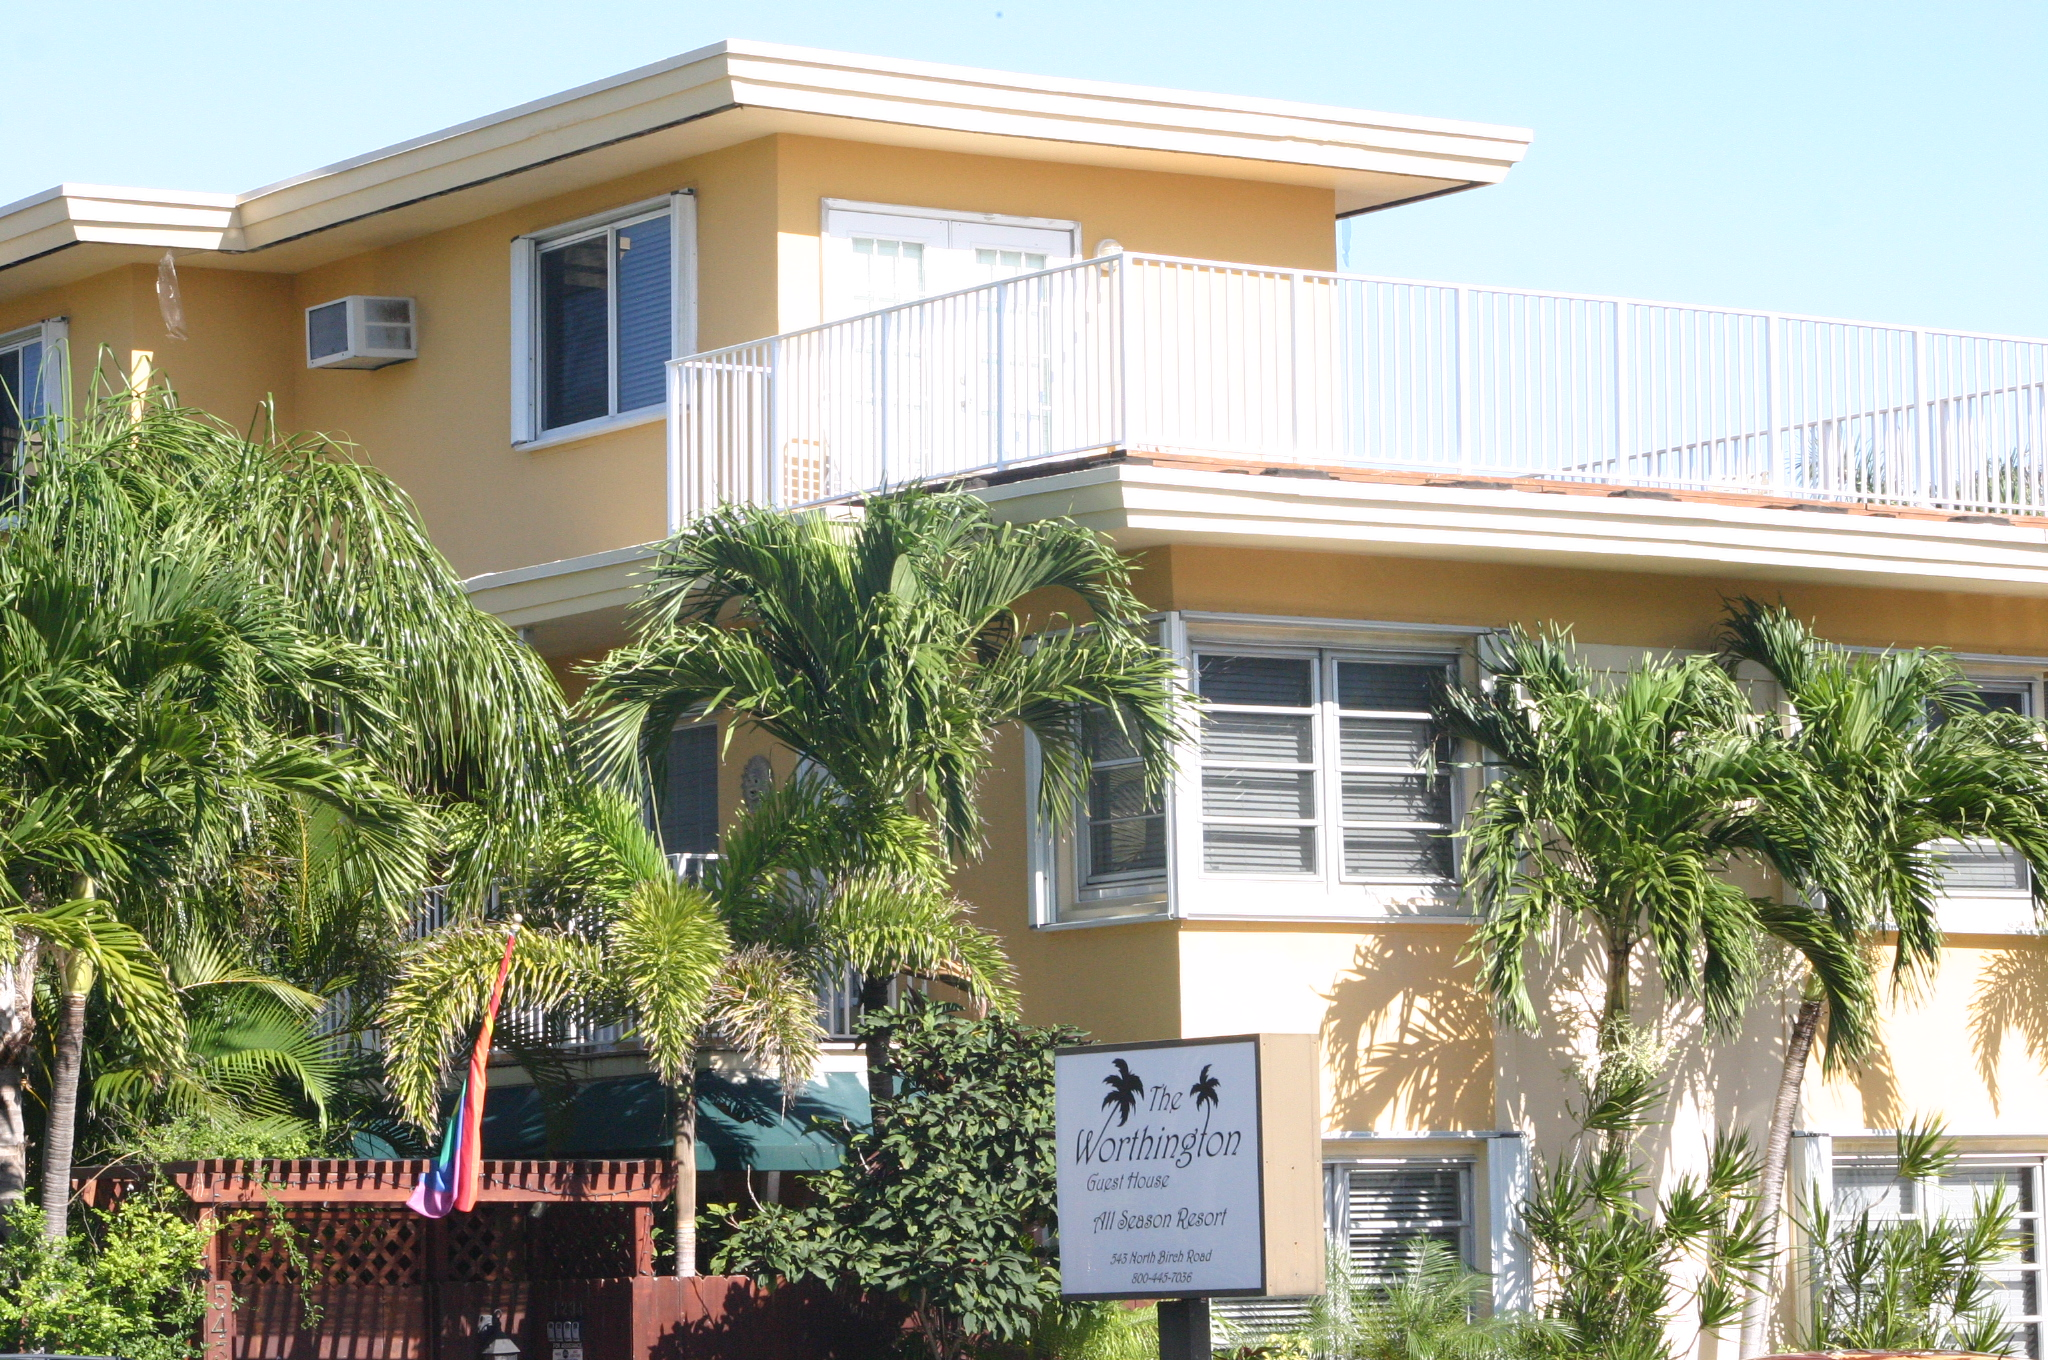 Fort Lauderdale Bathhouses Sex Clubs GayCities Fort Lauderdale